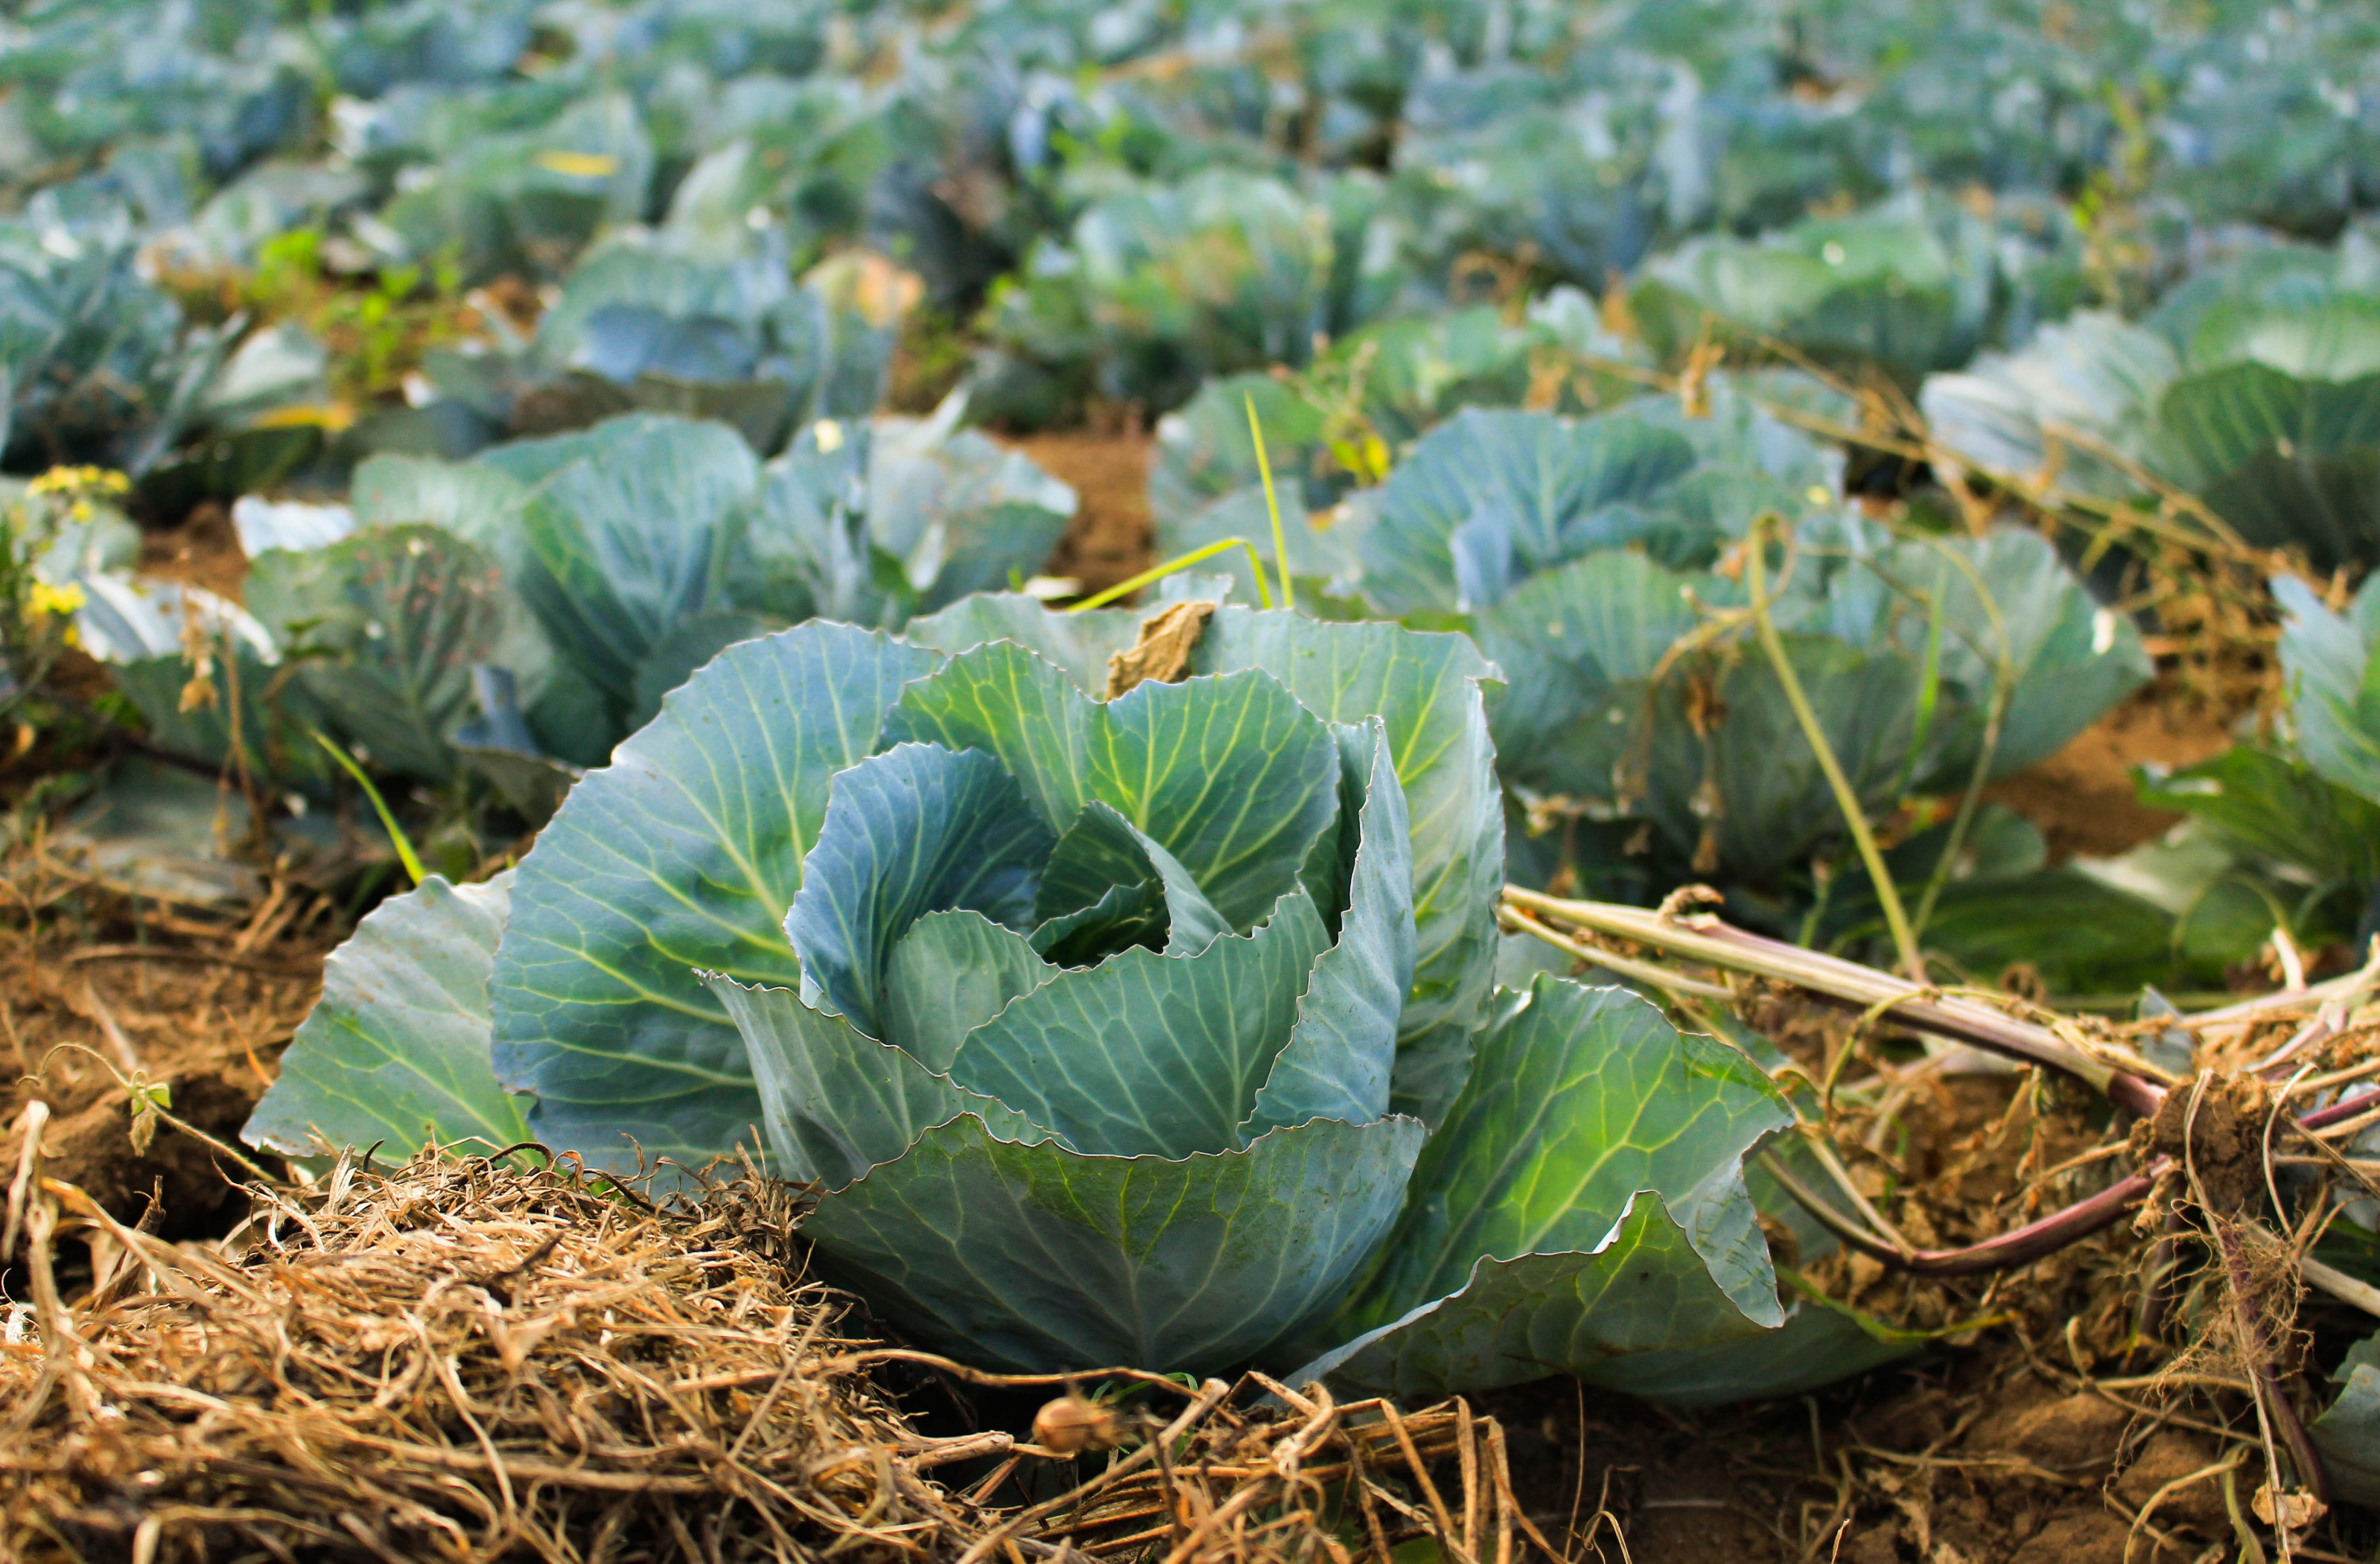 Cabbages planted in rows, ready to be picked